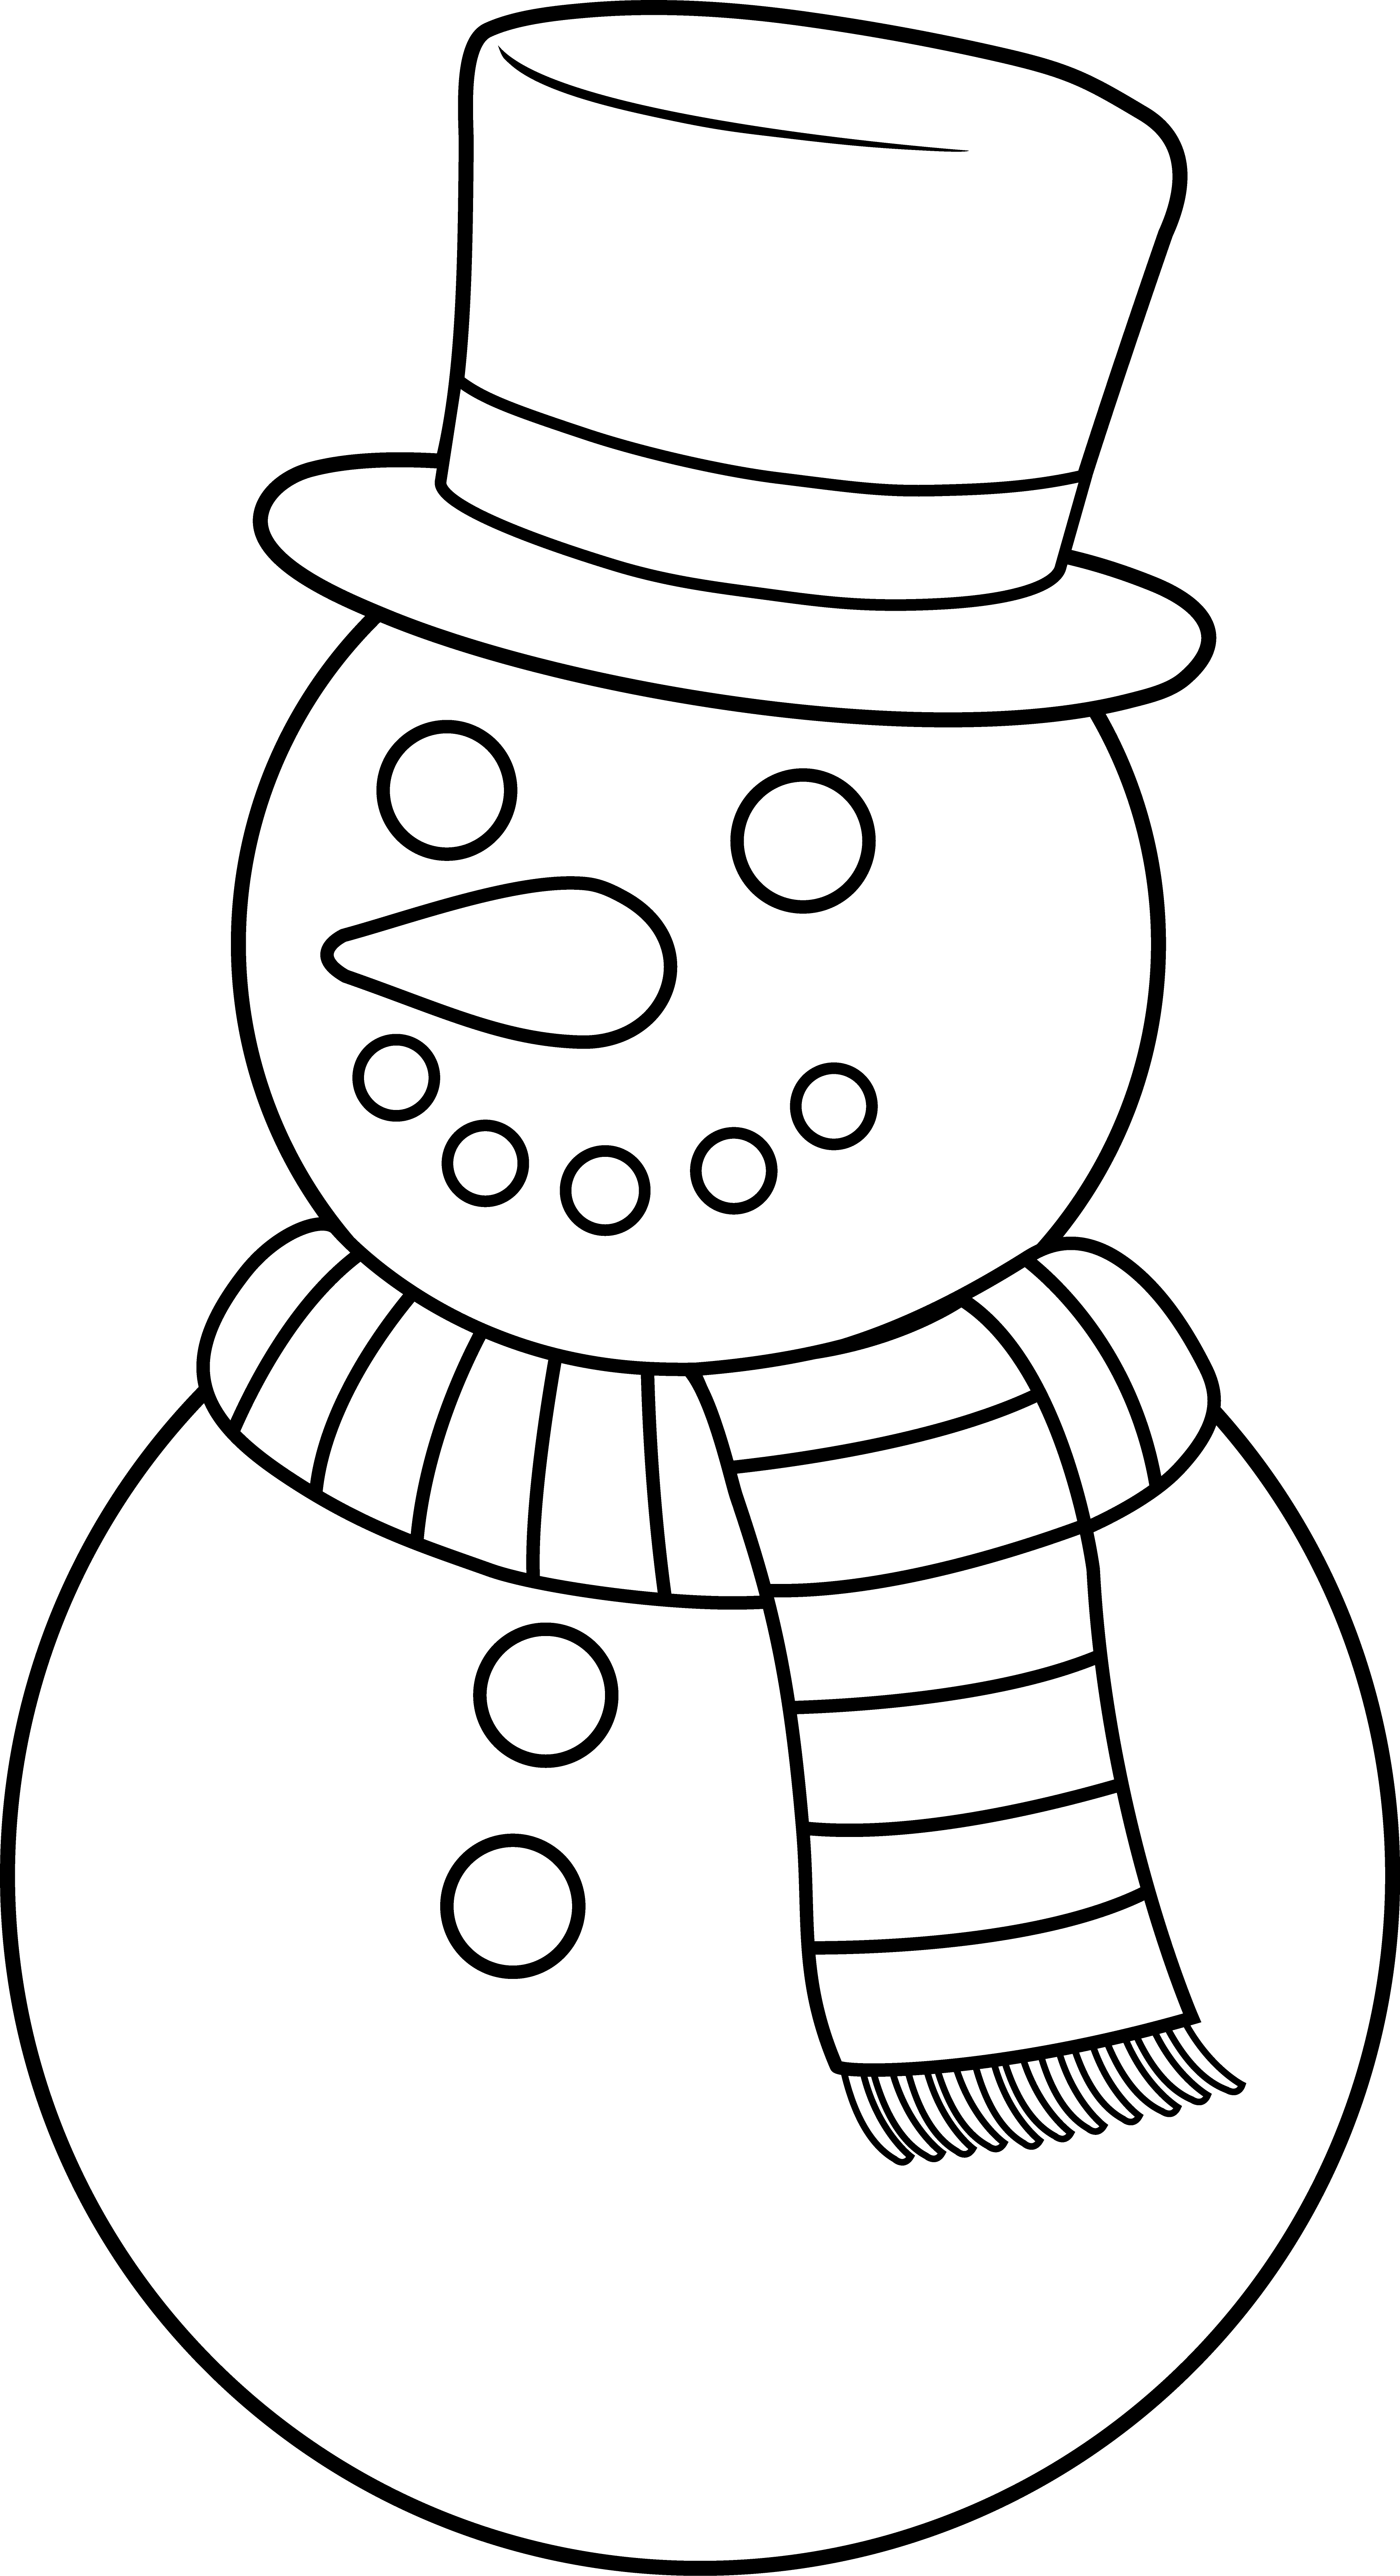 29+ Snowman clipart free black and white ideas in 2021